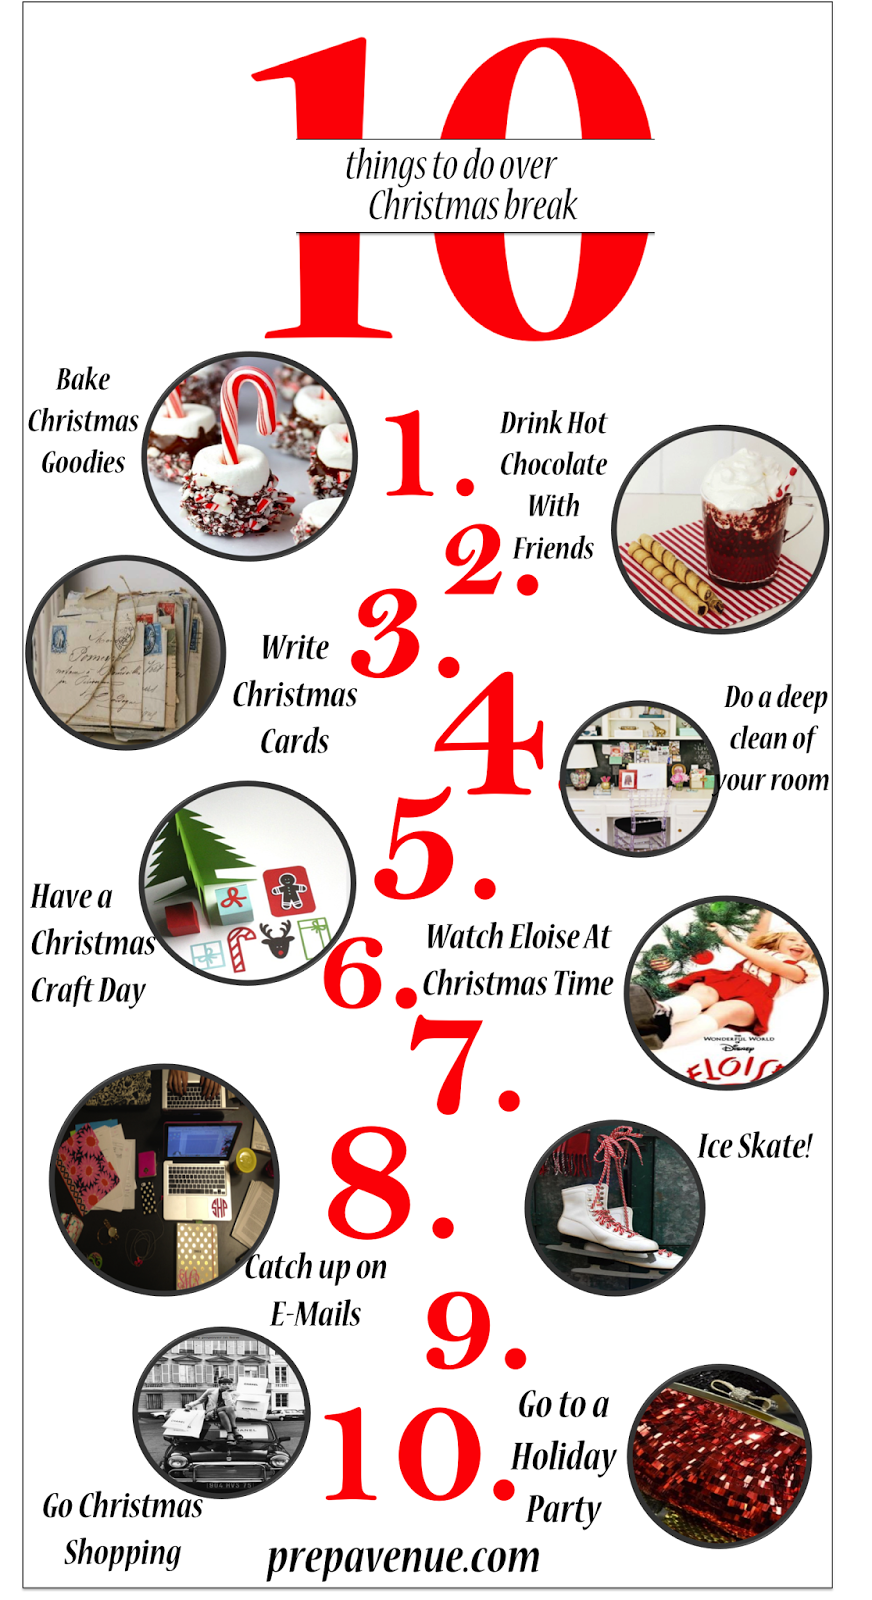 10 Things To Do Over Christmas Break - Prep Avenue